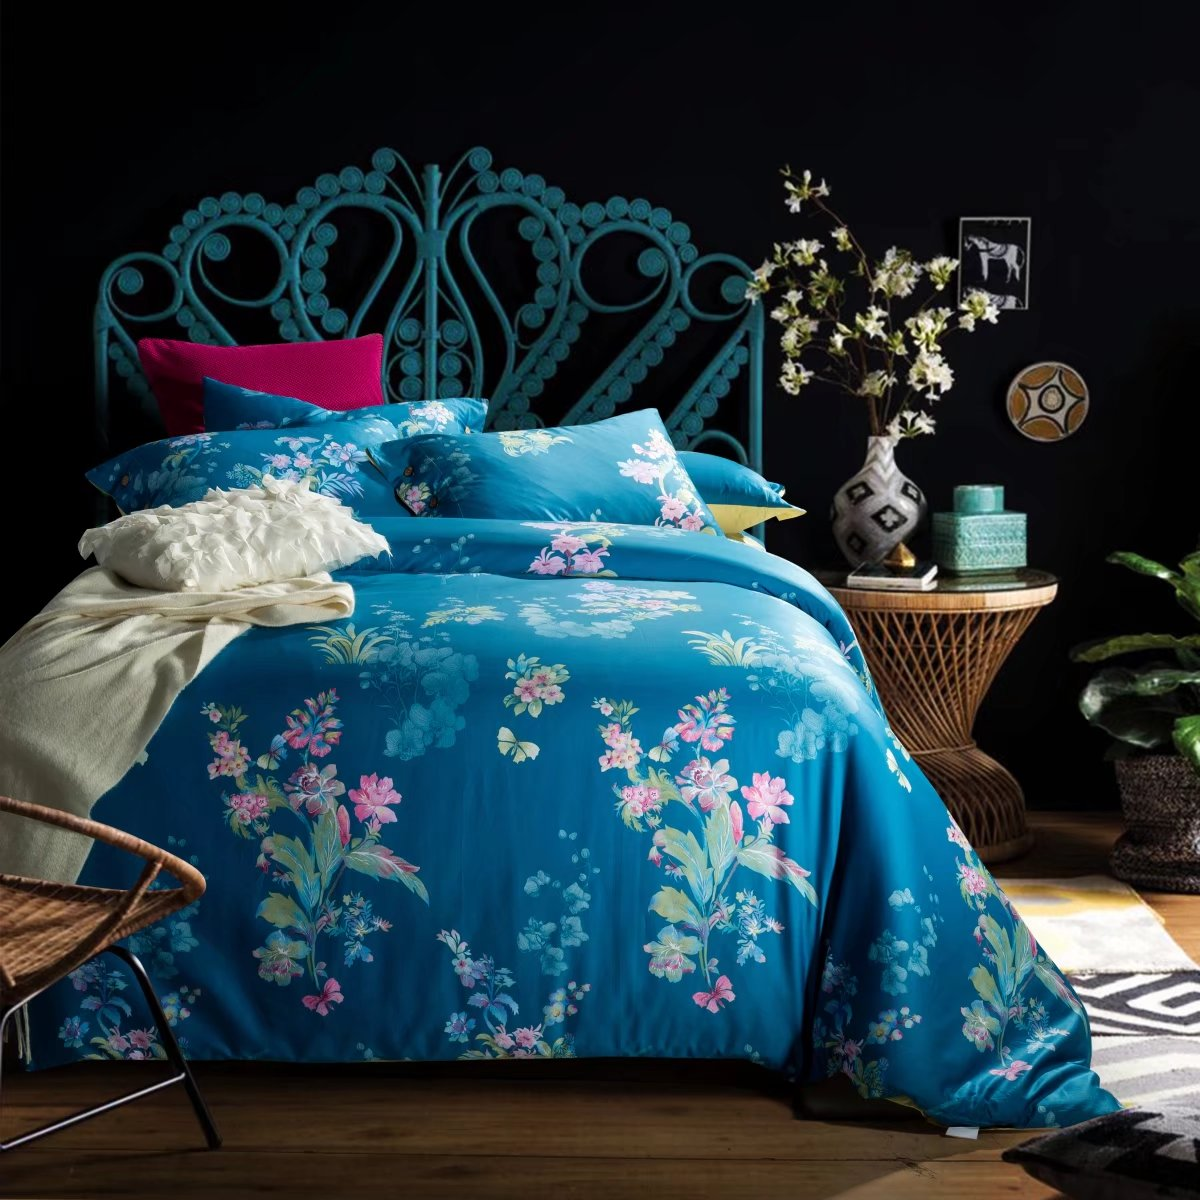 Premium 100% cotton French floral bed linen- CRMMS0030